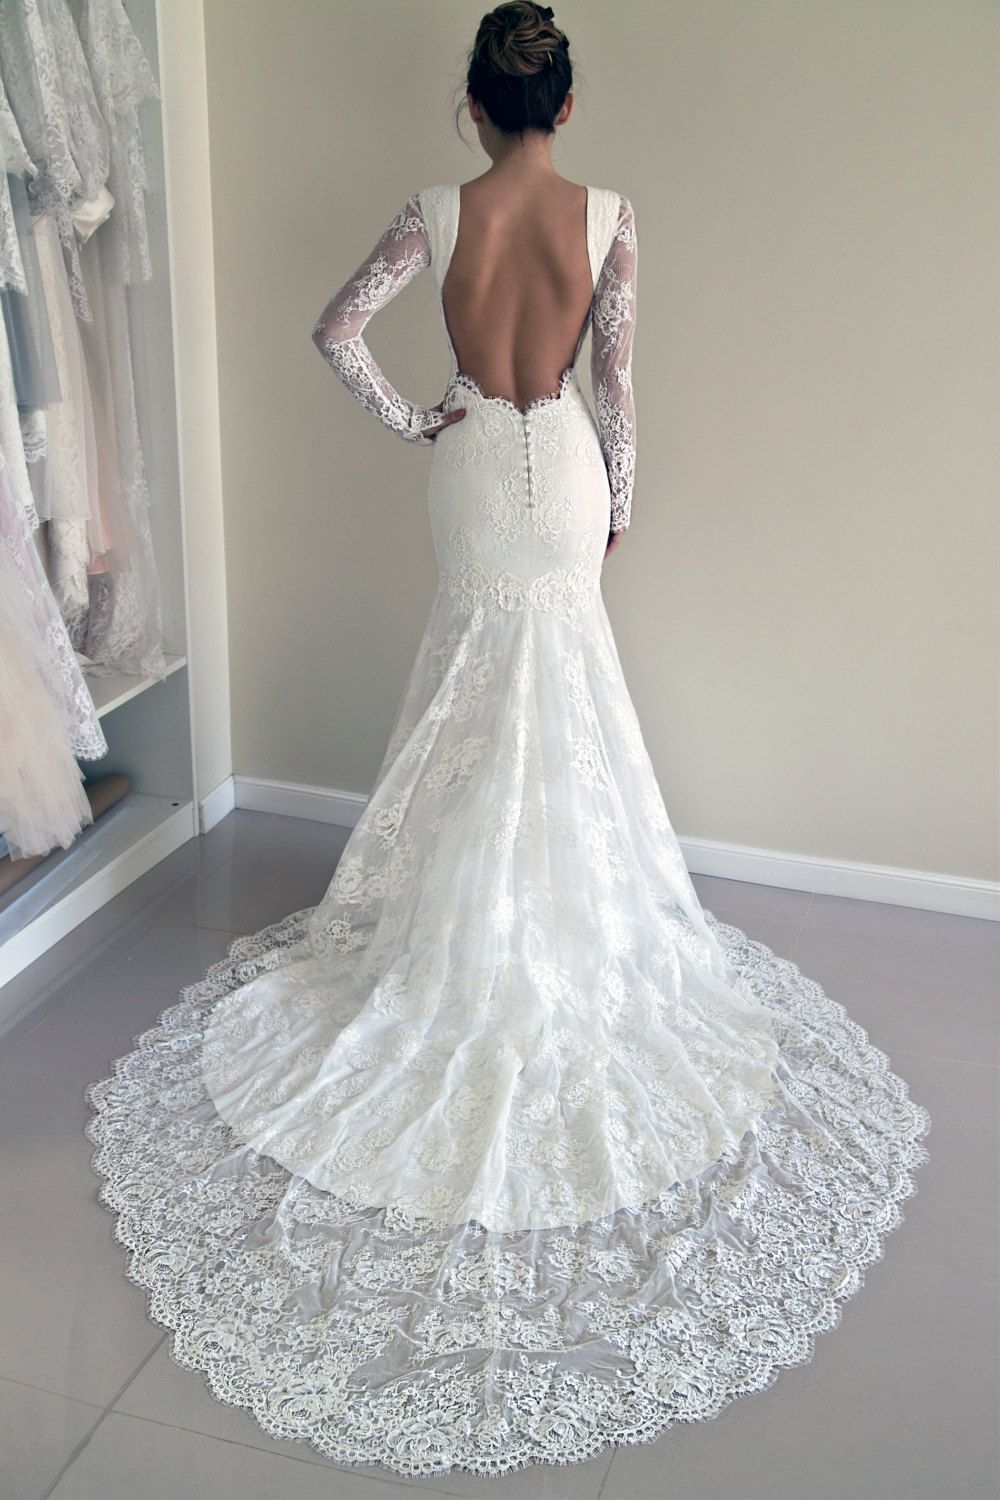 Lace Wedding Dress, Custom Made Wedding Dress, Trumpet Silhouette